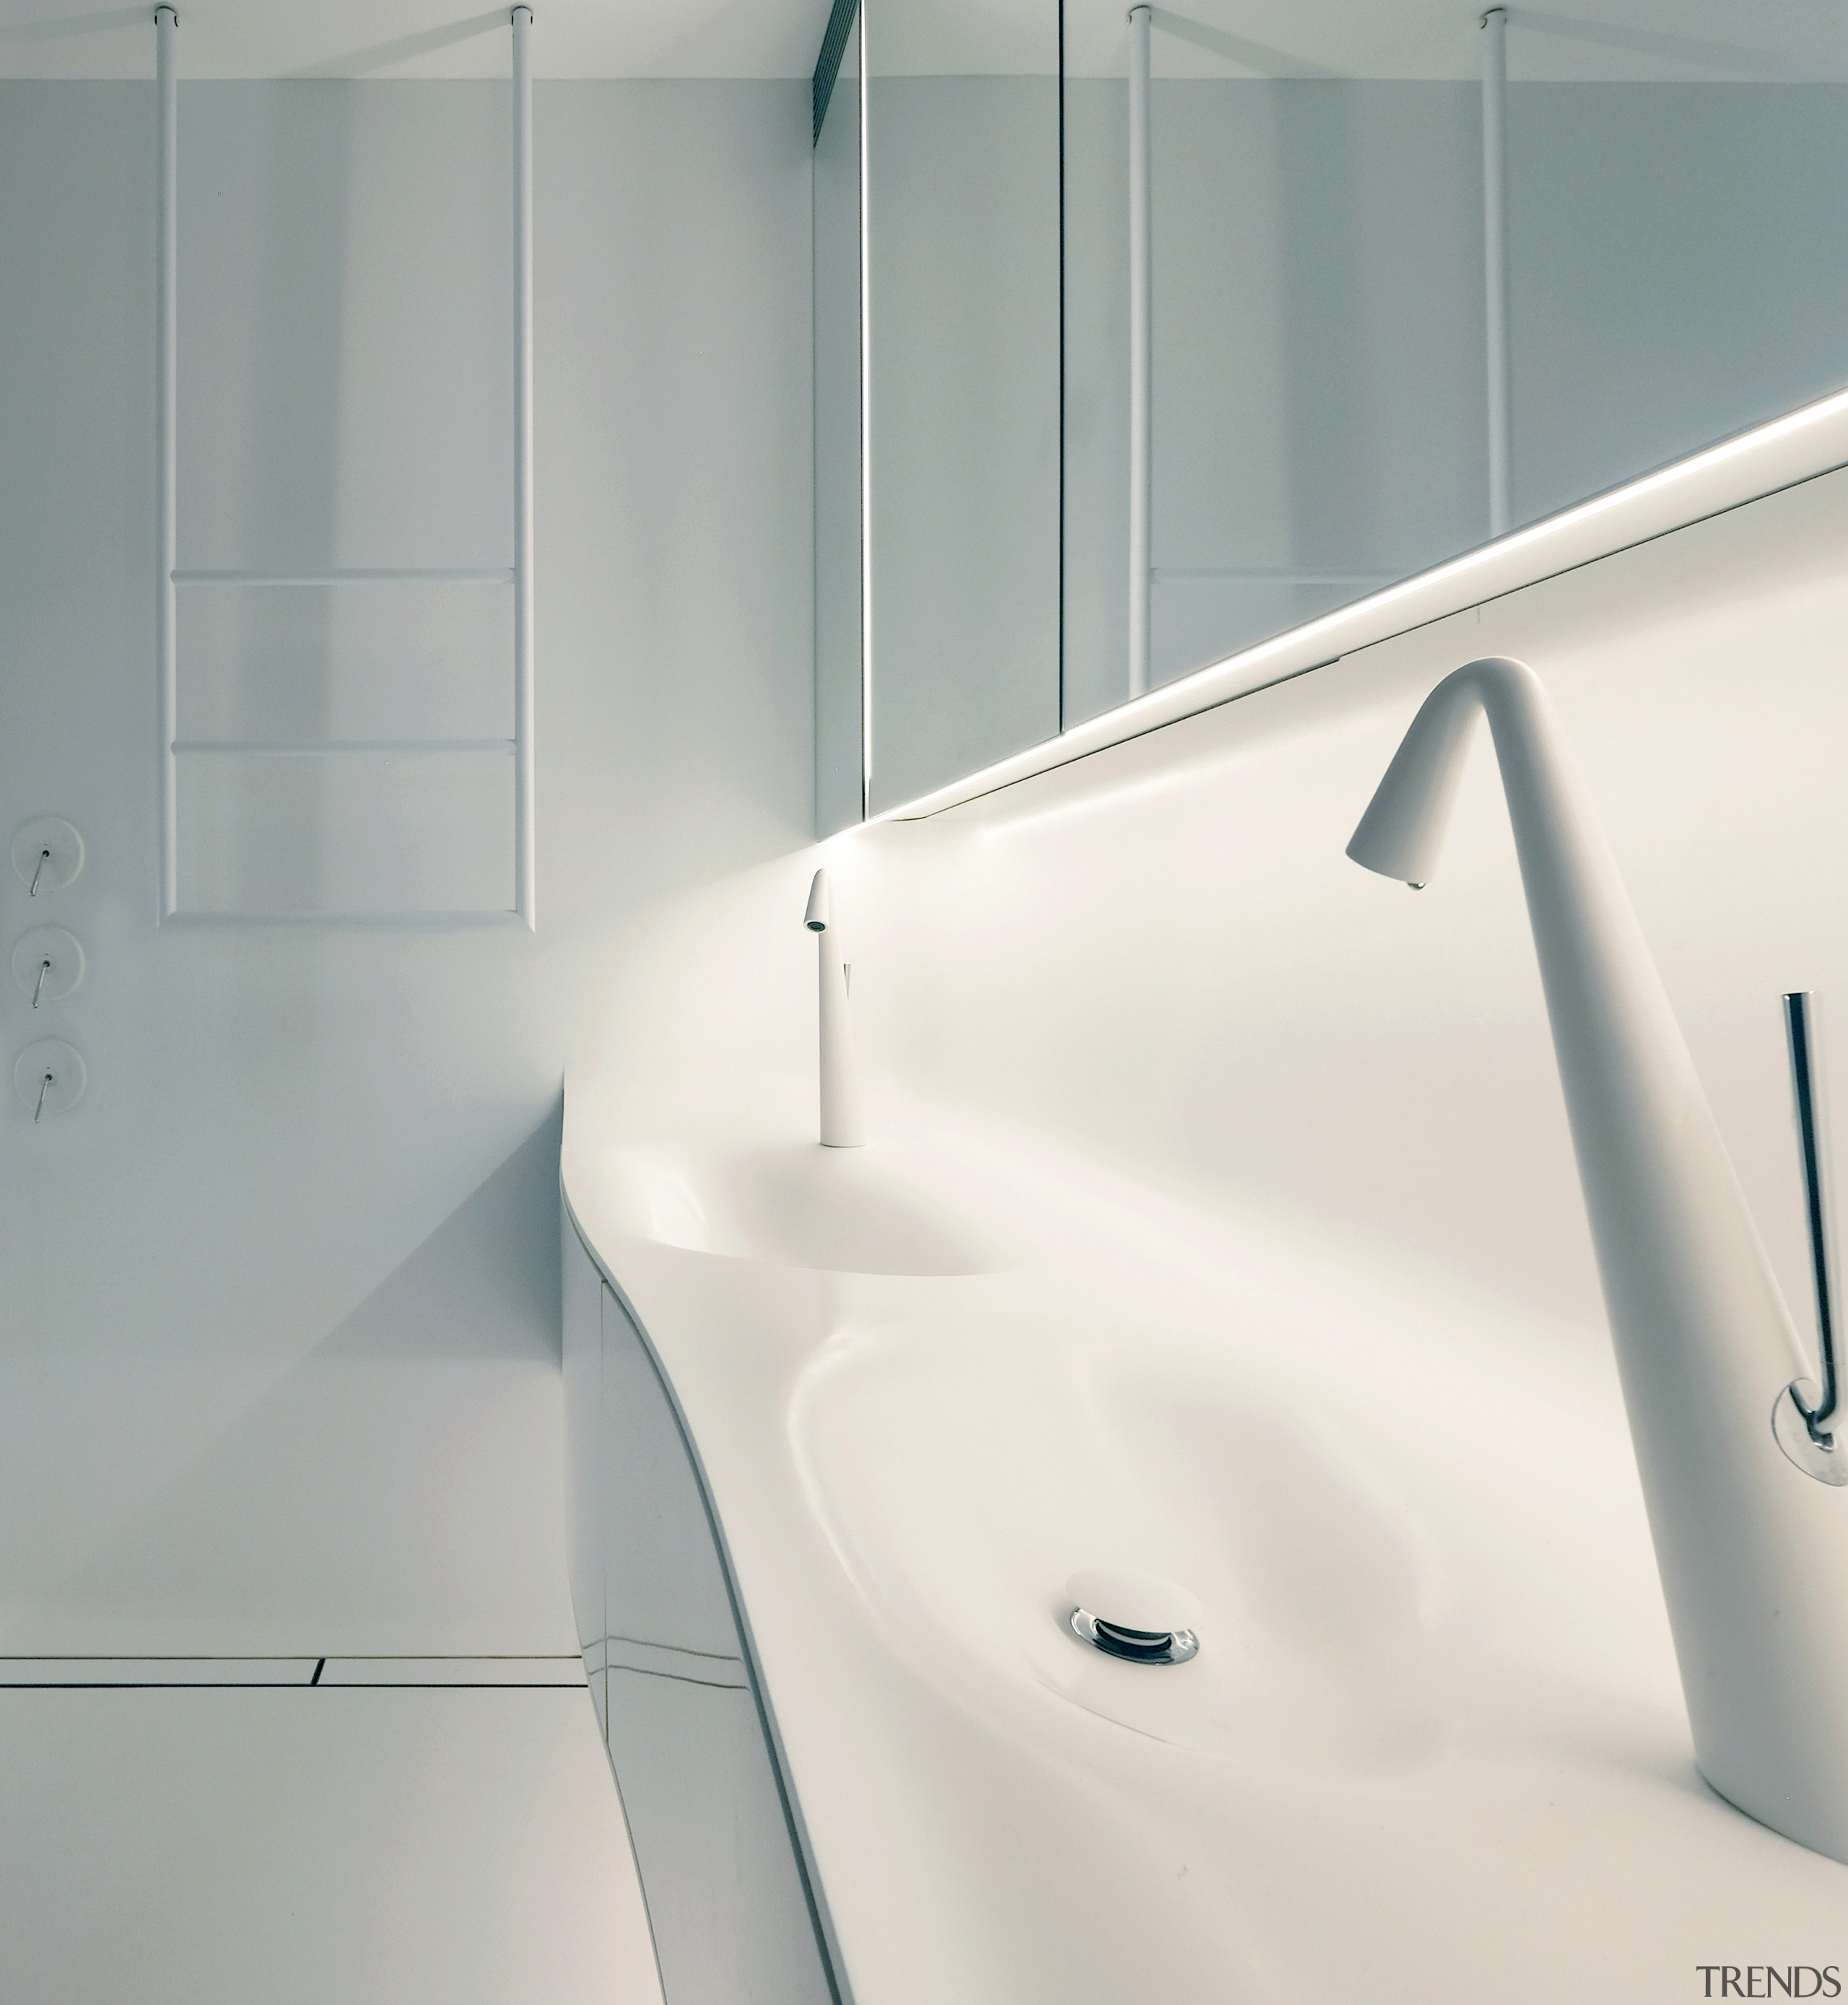 For this bathroom, the space-age vanity includes twin architecture, bathroom, bathtub, design, floor, flooring, interior design, line, material property, plumbing fixture, room, sink, tap, tile, white, gray, white